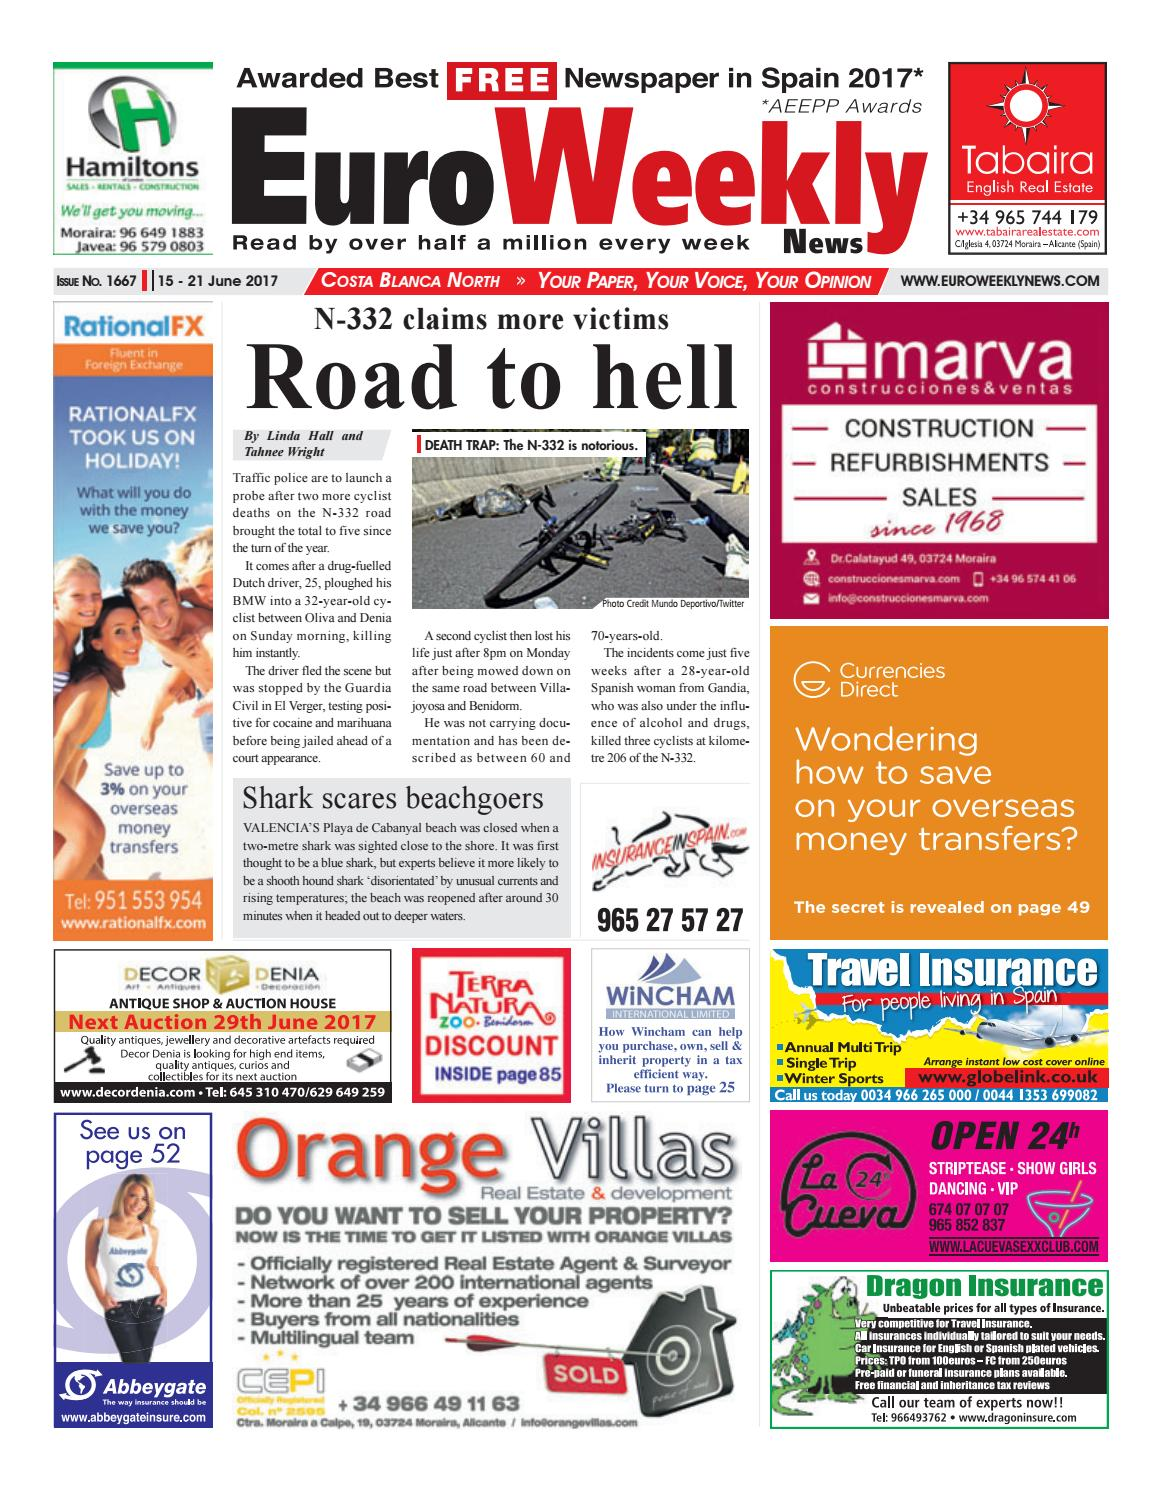 e4137f6b8e3 Euro Weekly News - Costa Blanca North 15 - 21 June 2017 Issue 1667 by Euro  Weekly News Media S.A. - issuu